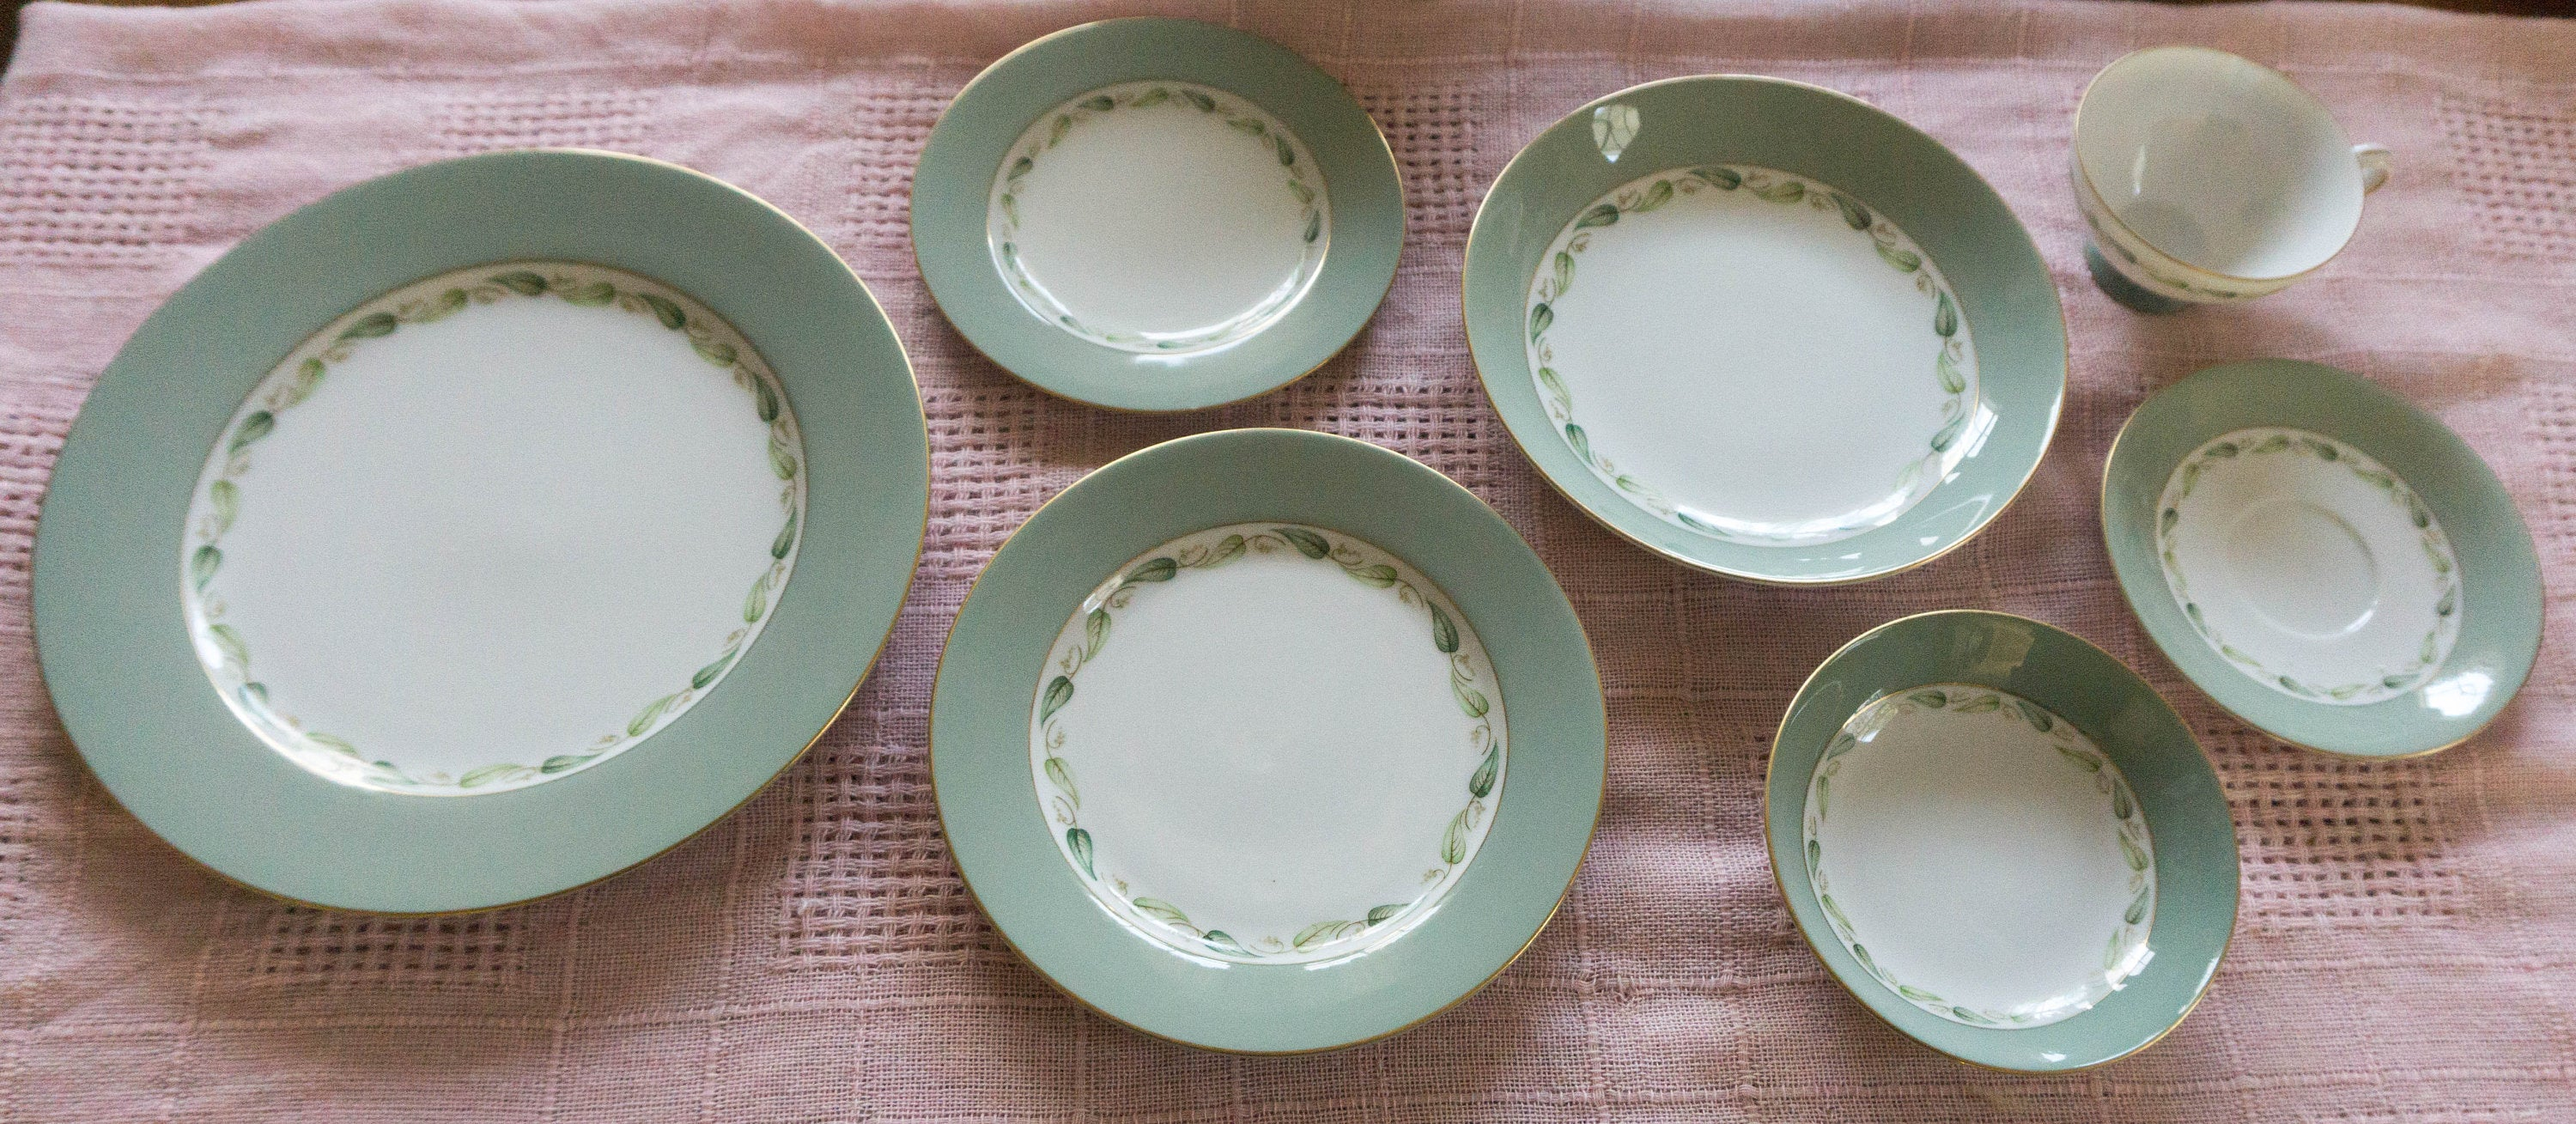 Gorgeous Vintage Seven Piece Place Setting in Tuxedo by Puritan